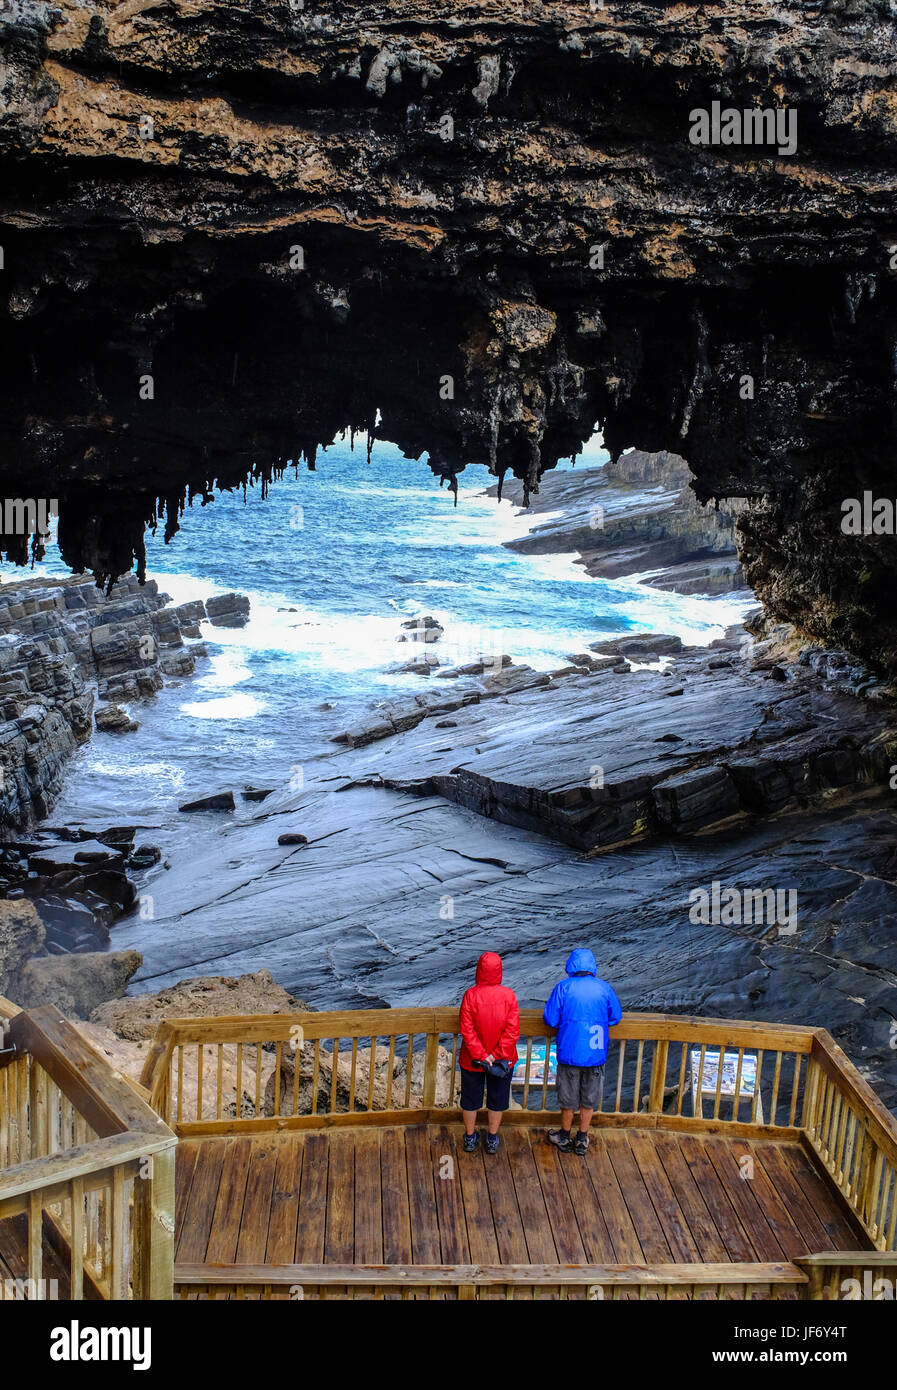 Tourists visit the cave of Admirals Arch on Kangaroo Island, South Australia. The island lies in the state of South - Stock Image